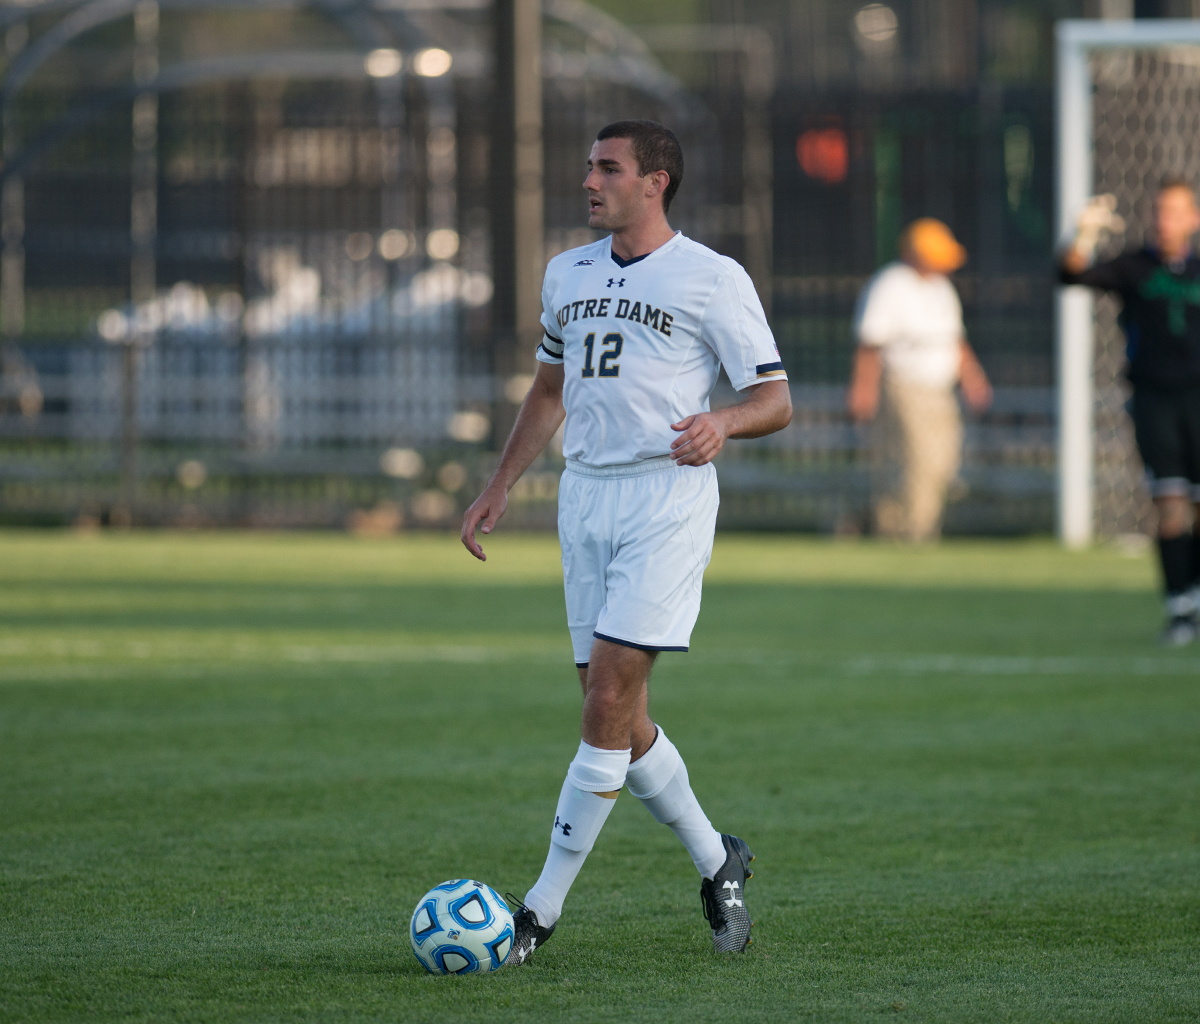 Graduate student defender Andrew O'Malley scans the field during a 1-0 home loss to Kentucky on Sept. 8.